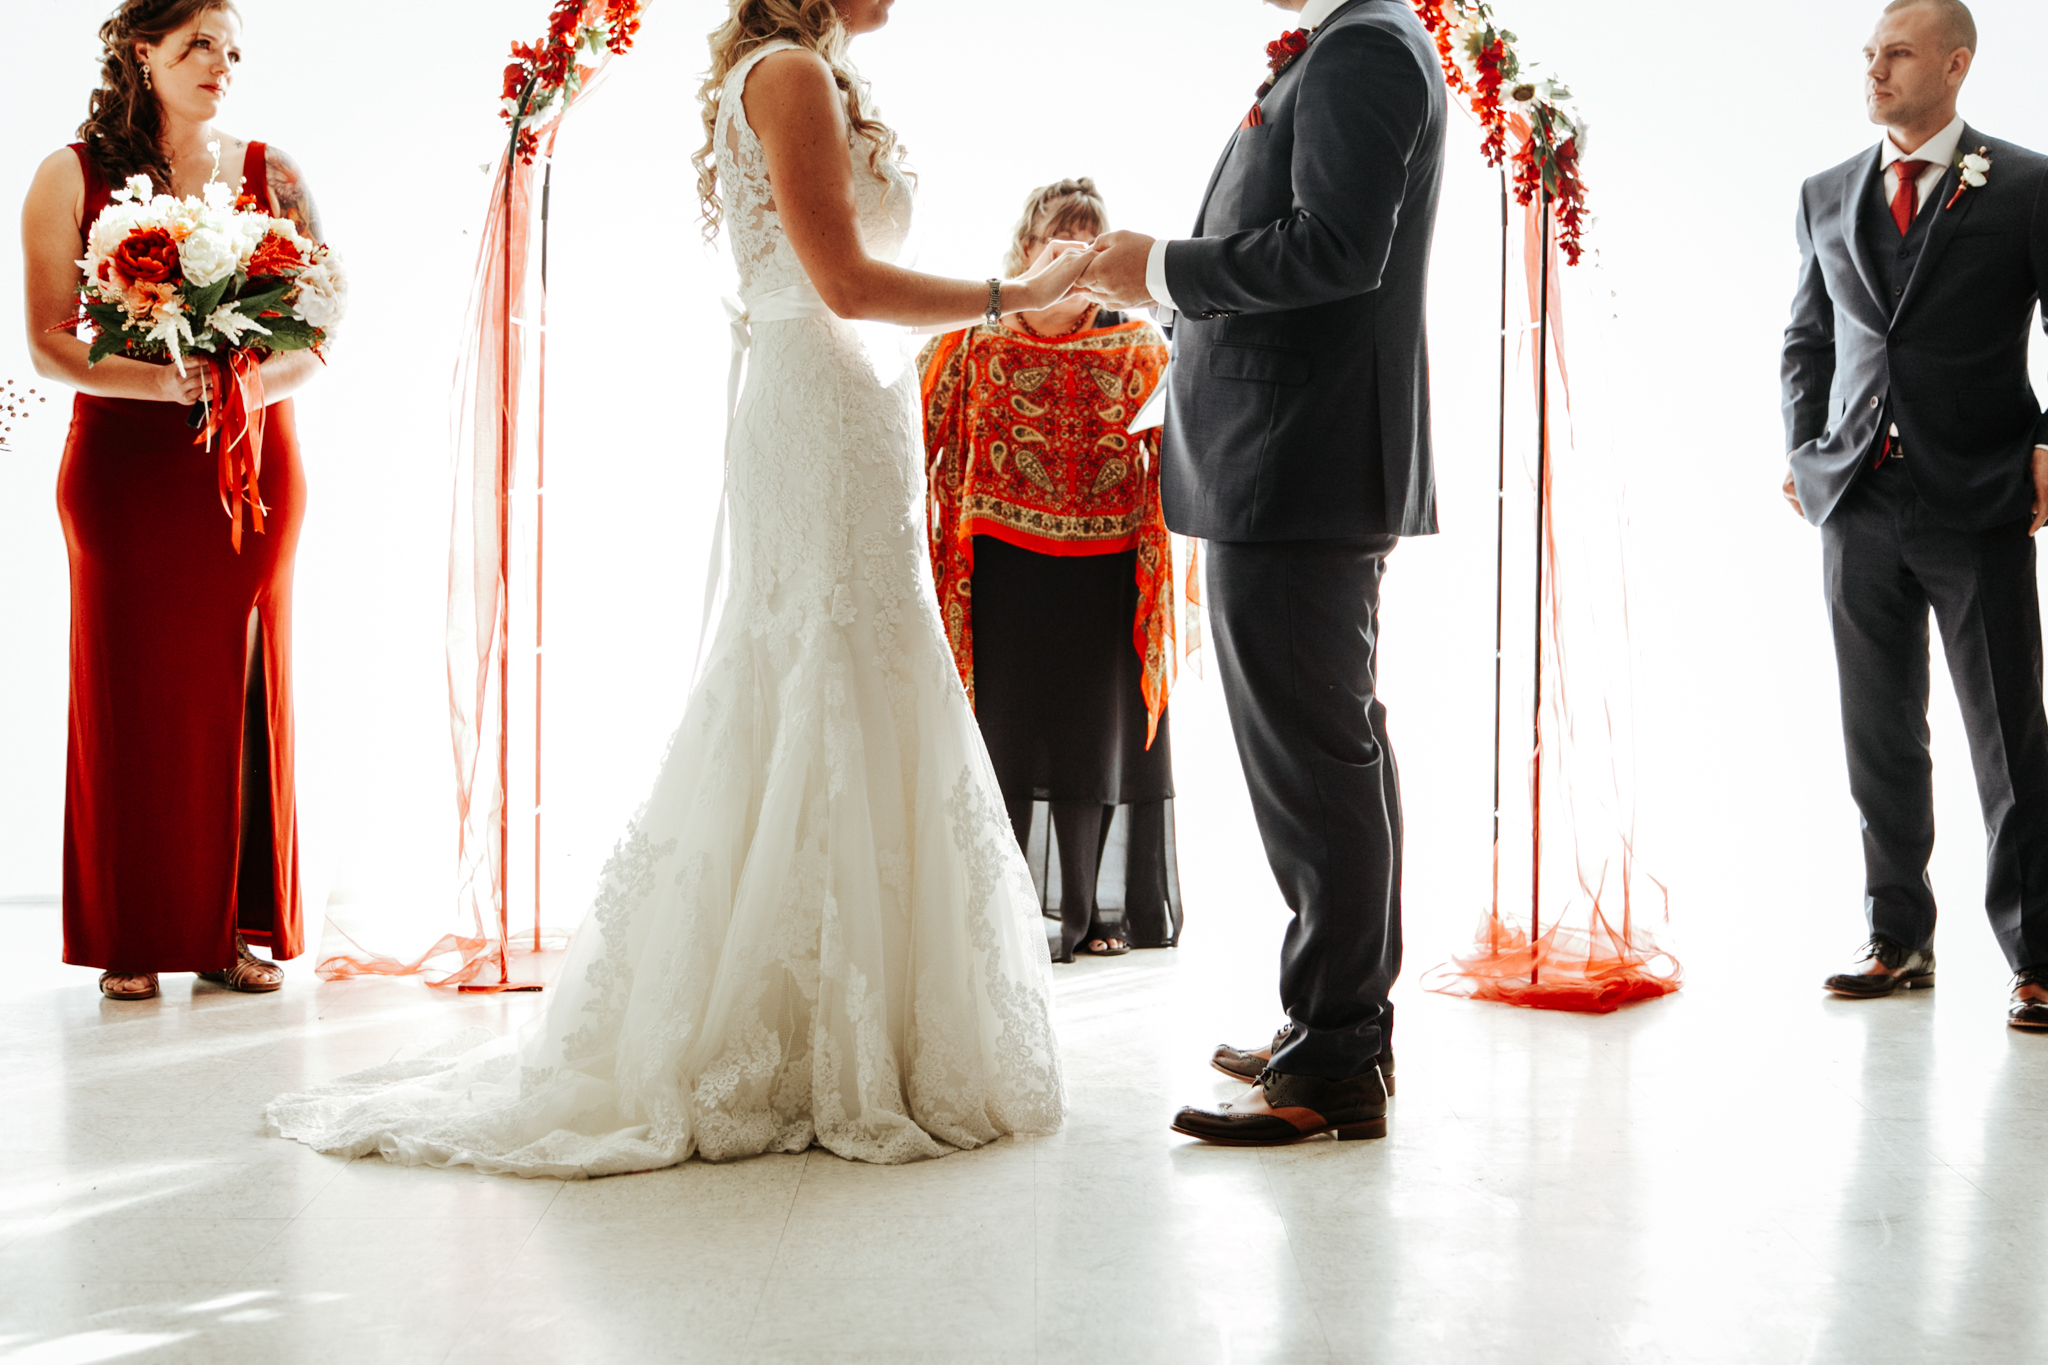 lethbridge-wedding-photography-love-and-be-loved-rocky-mountain-turf-club-ceremony-picture-image-photo-20.jpg